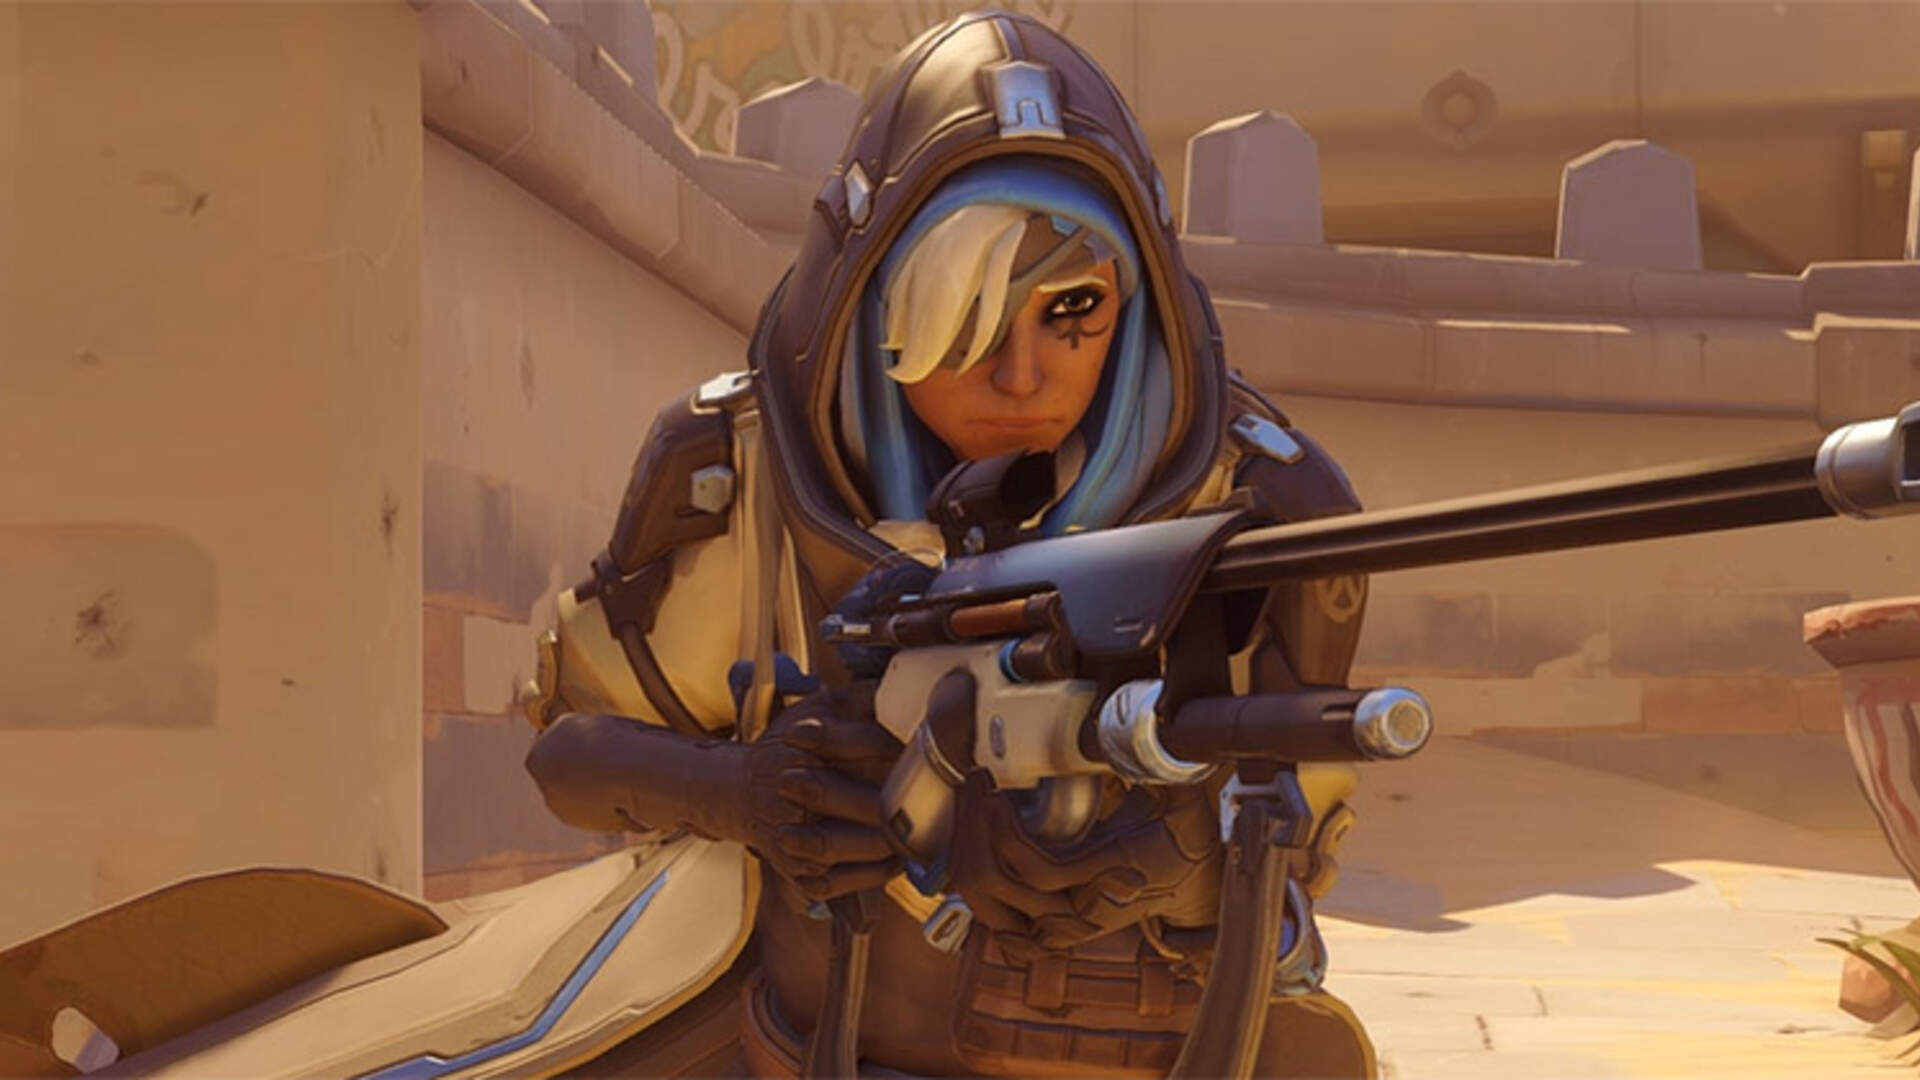 Overwatch's Ana Walks a Careful Line Between Offense and Support